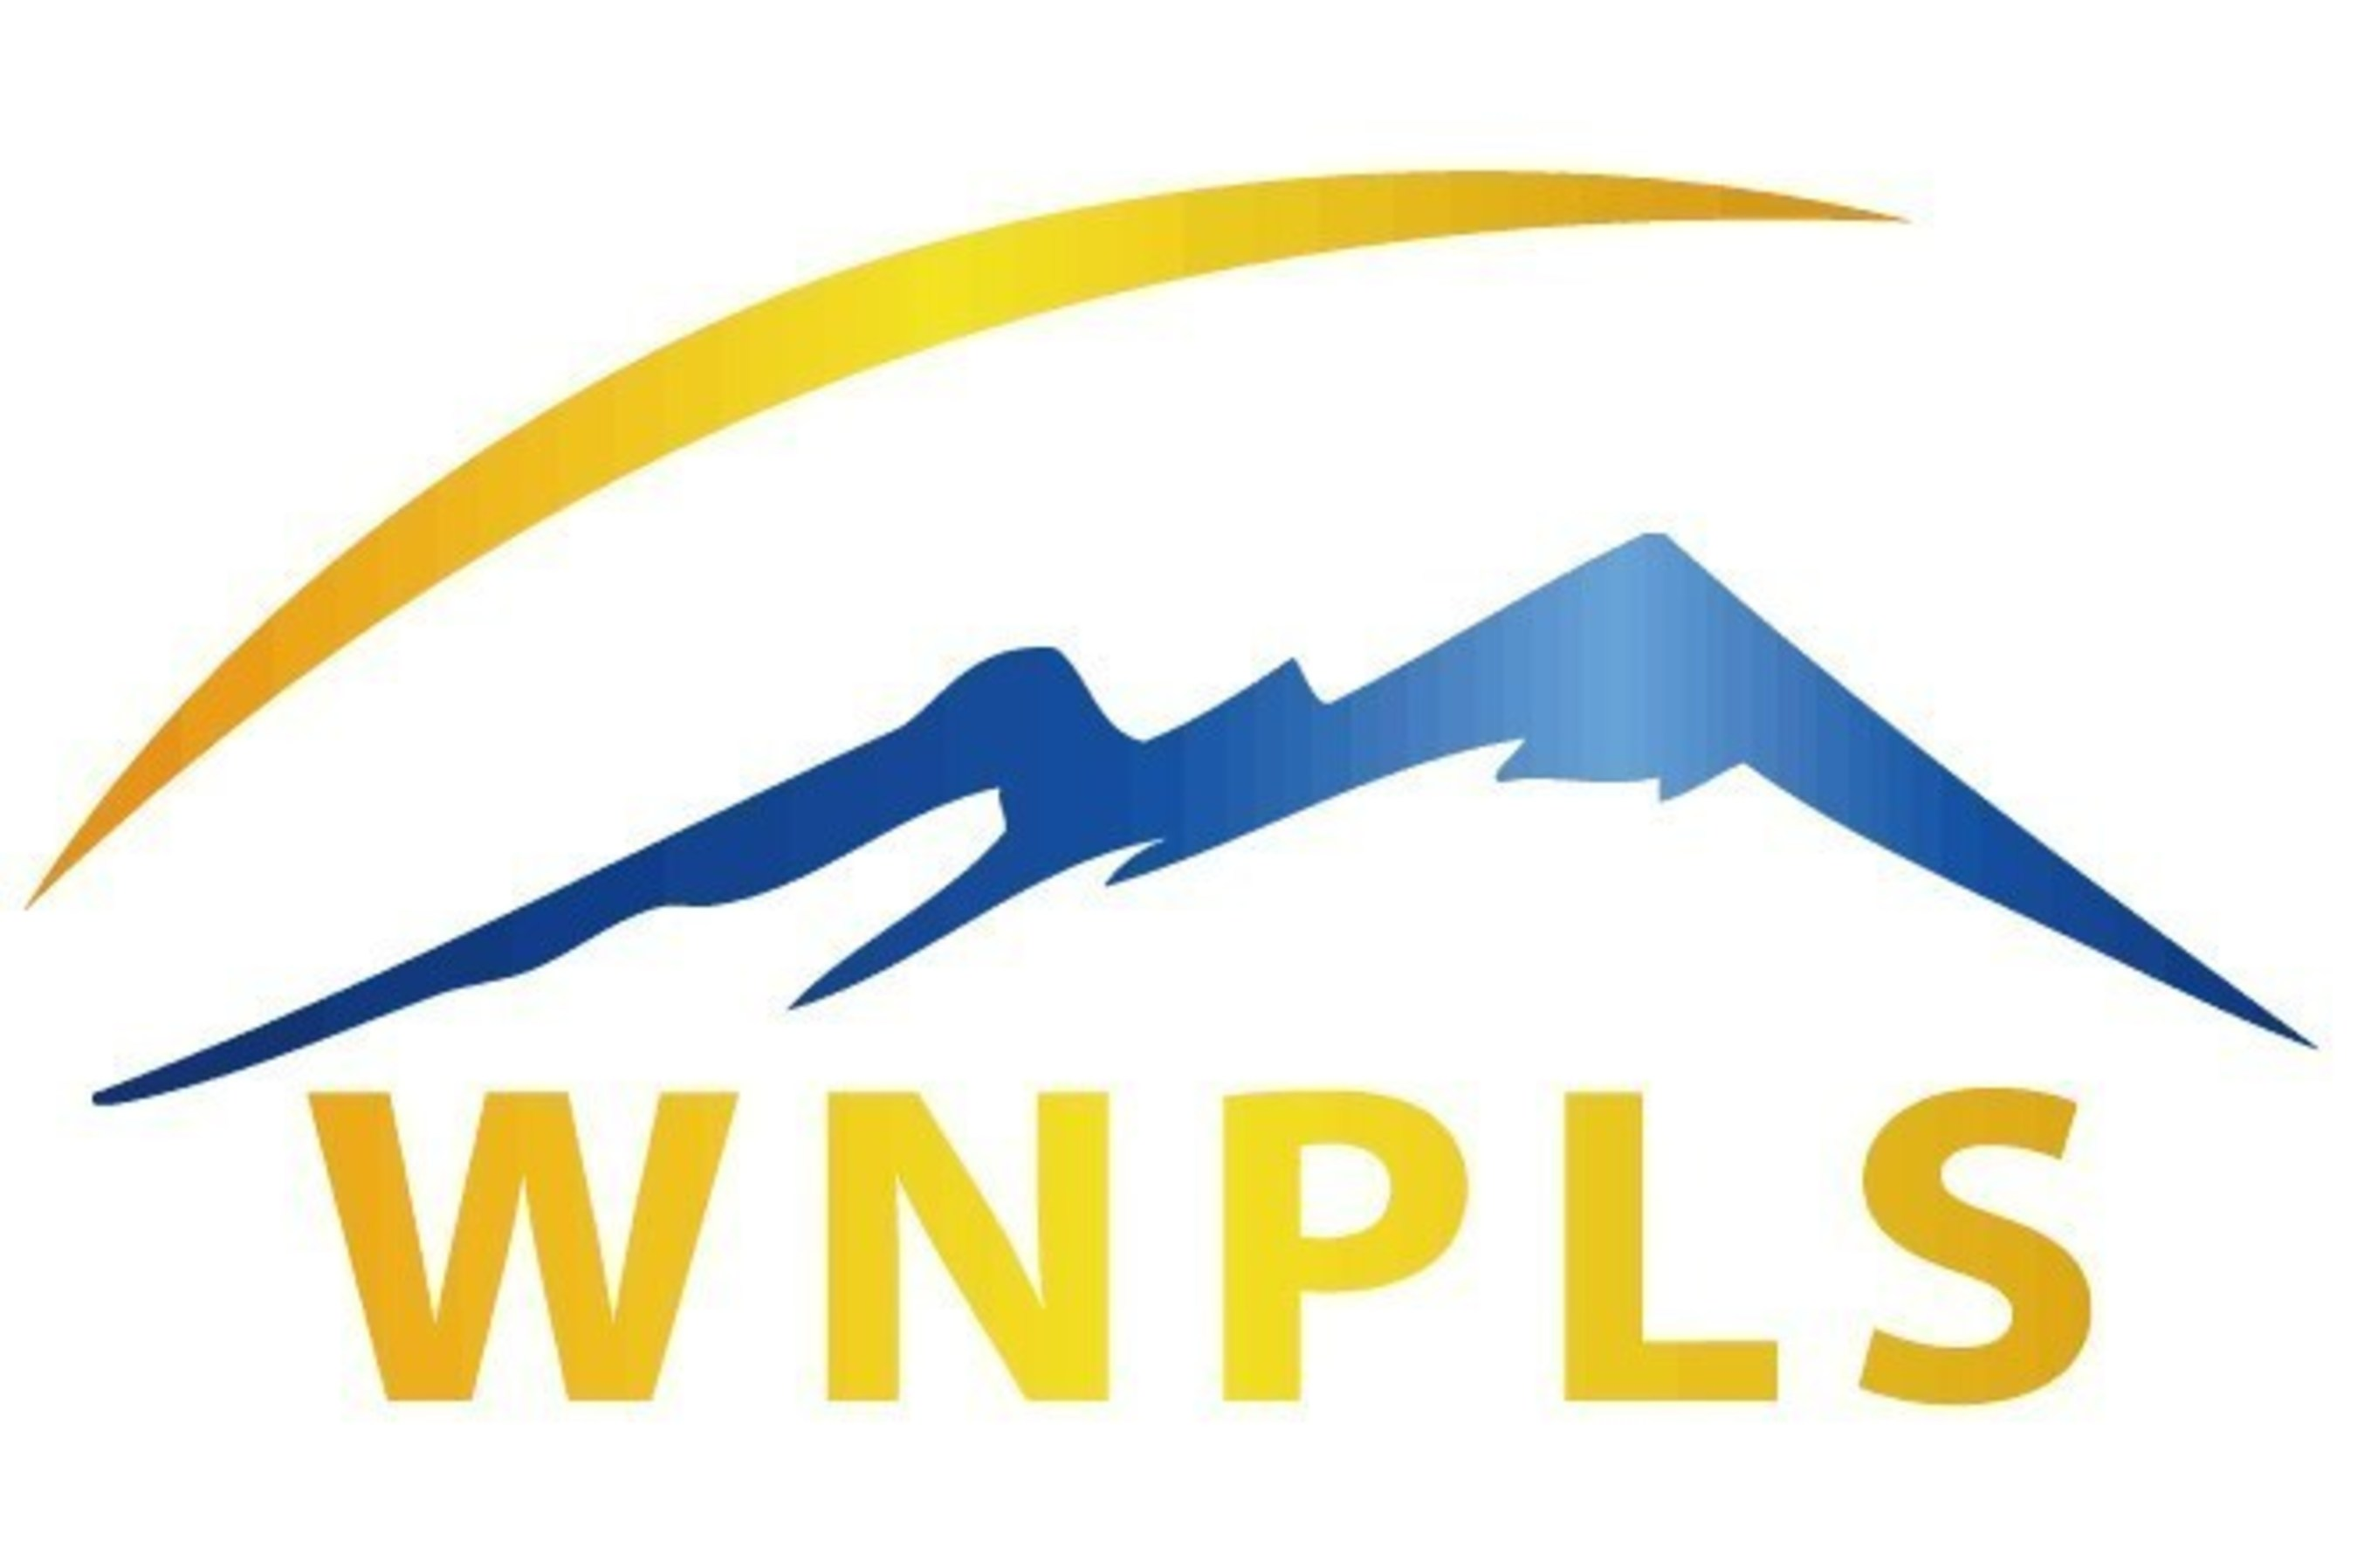 """Six Nobel Prize Laureates and over 20 internationally acclaimed researchers and scientists will present at the third annual, """"World Nobel Prize Laureate Summit"""" (WNPLS) in Chengdu, China, September 2-3, 2016. The 2016 WNPLS will feature three programs of scientific exploration: 1) """"Anpac Bio World Youth Innovation Forum""""; 2) """"International Symposium for Precision Medicine""""; and 3) the """"Bio-Pharmaceutical Industry Forum""""."""